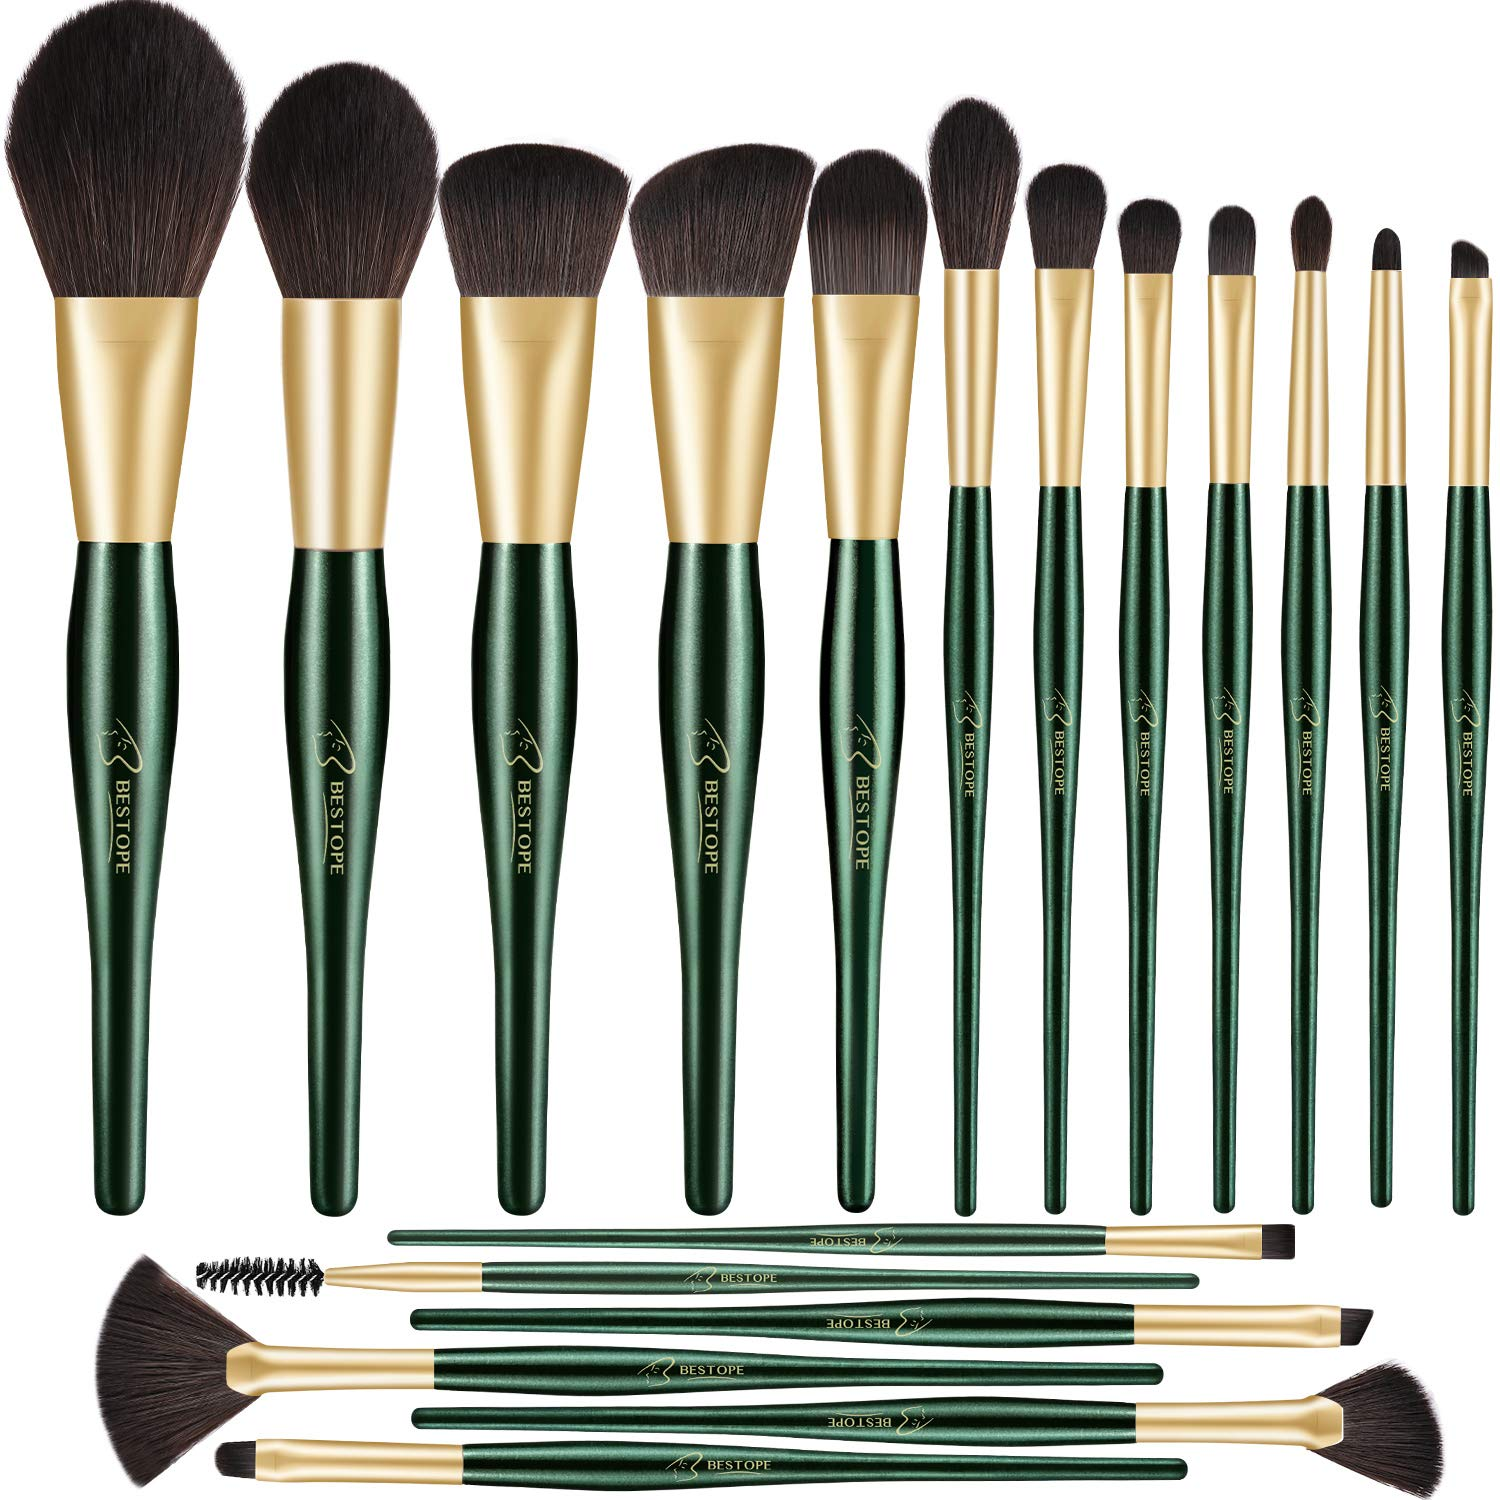 BESTOPE 18 PCs Makeup Brushes, Belly-type Handle Professional Premium Synthetic Cosmetic Brushes for Blending Foundation Powder Blush Concealers Highlighter Eye Shadows Brushes Kit